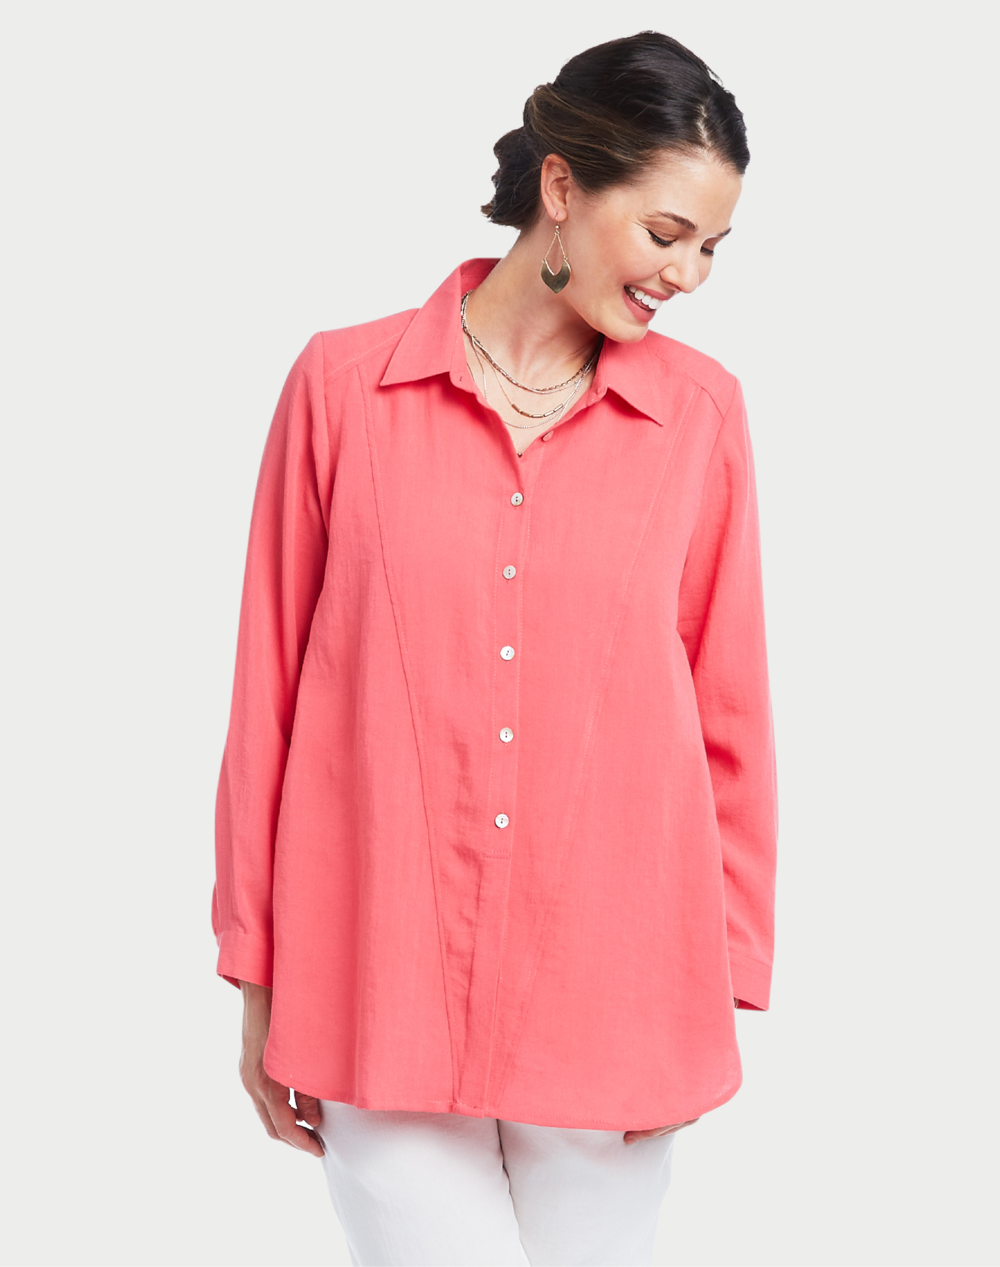 Fridaze, founded by Joyce Tang, is the original and only wrinkle-resistant 100% linen collection on the market.